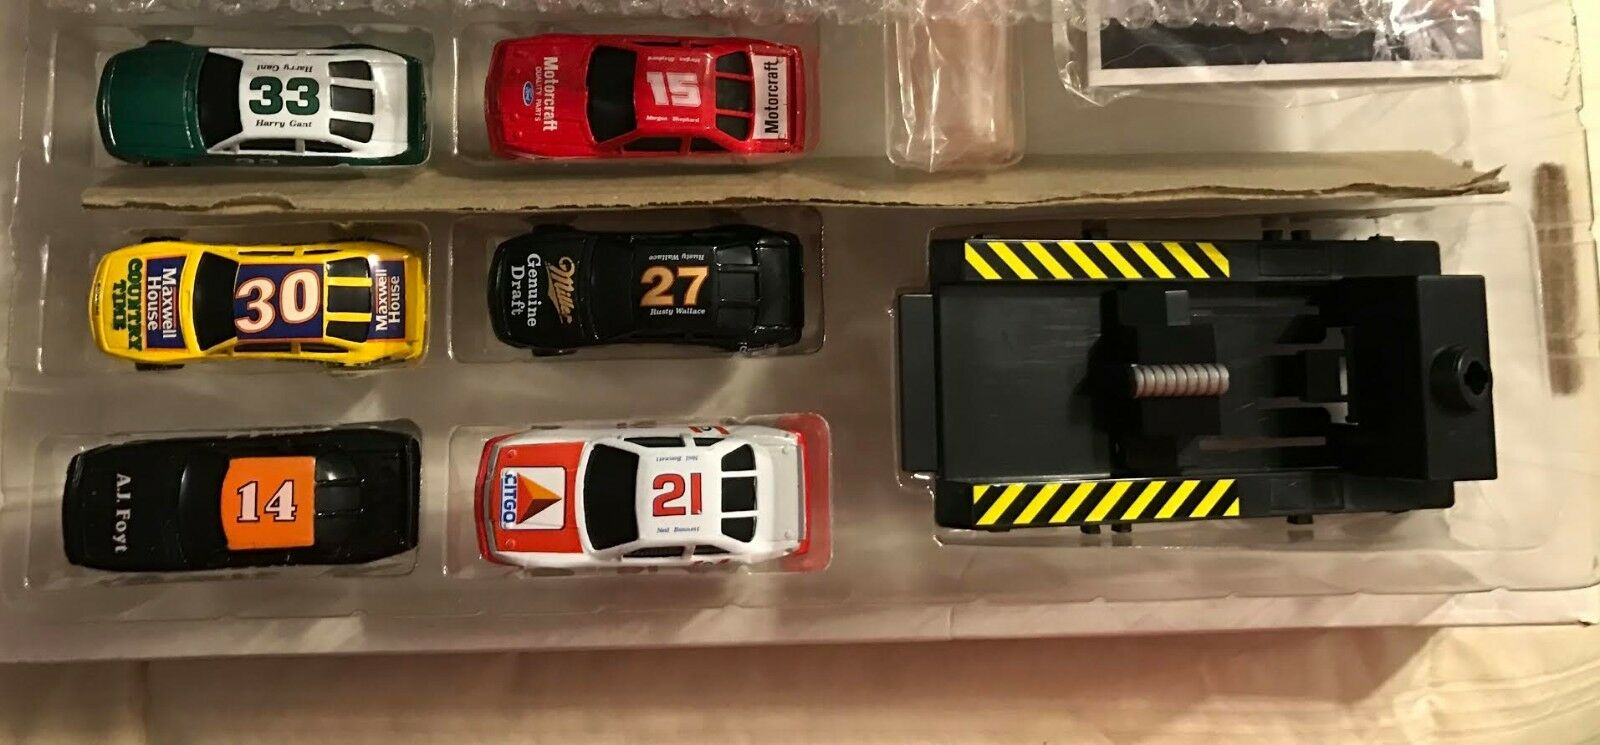 1990 RARE12 CAR BOXED SET - MINT CONDITION - - - NEVER REMOVED FROM BOX 0bfdcb